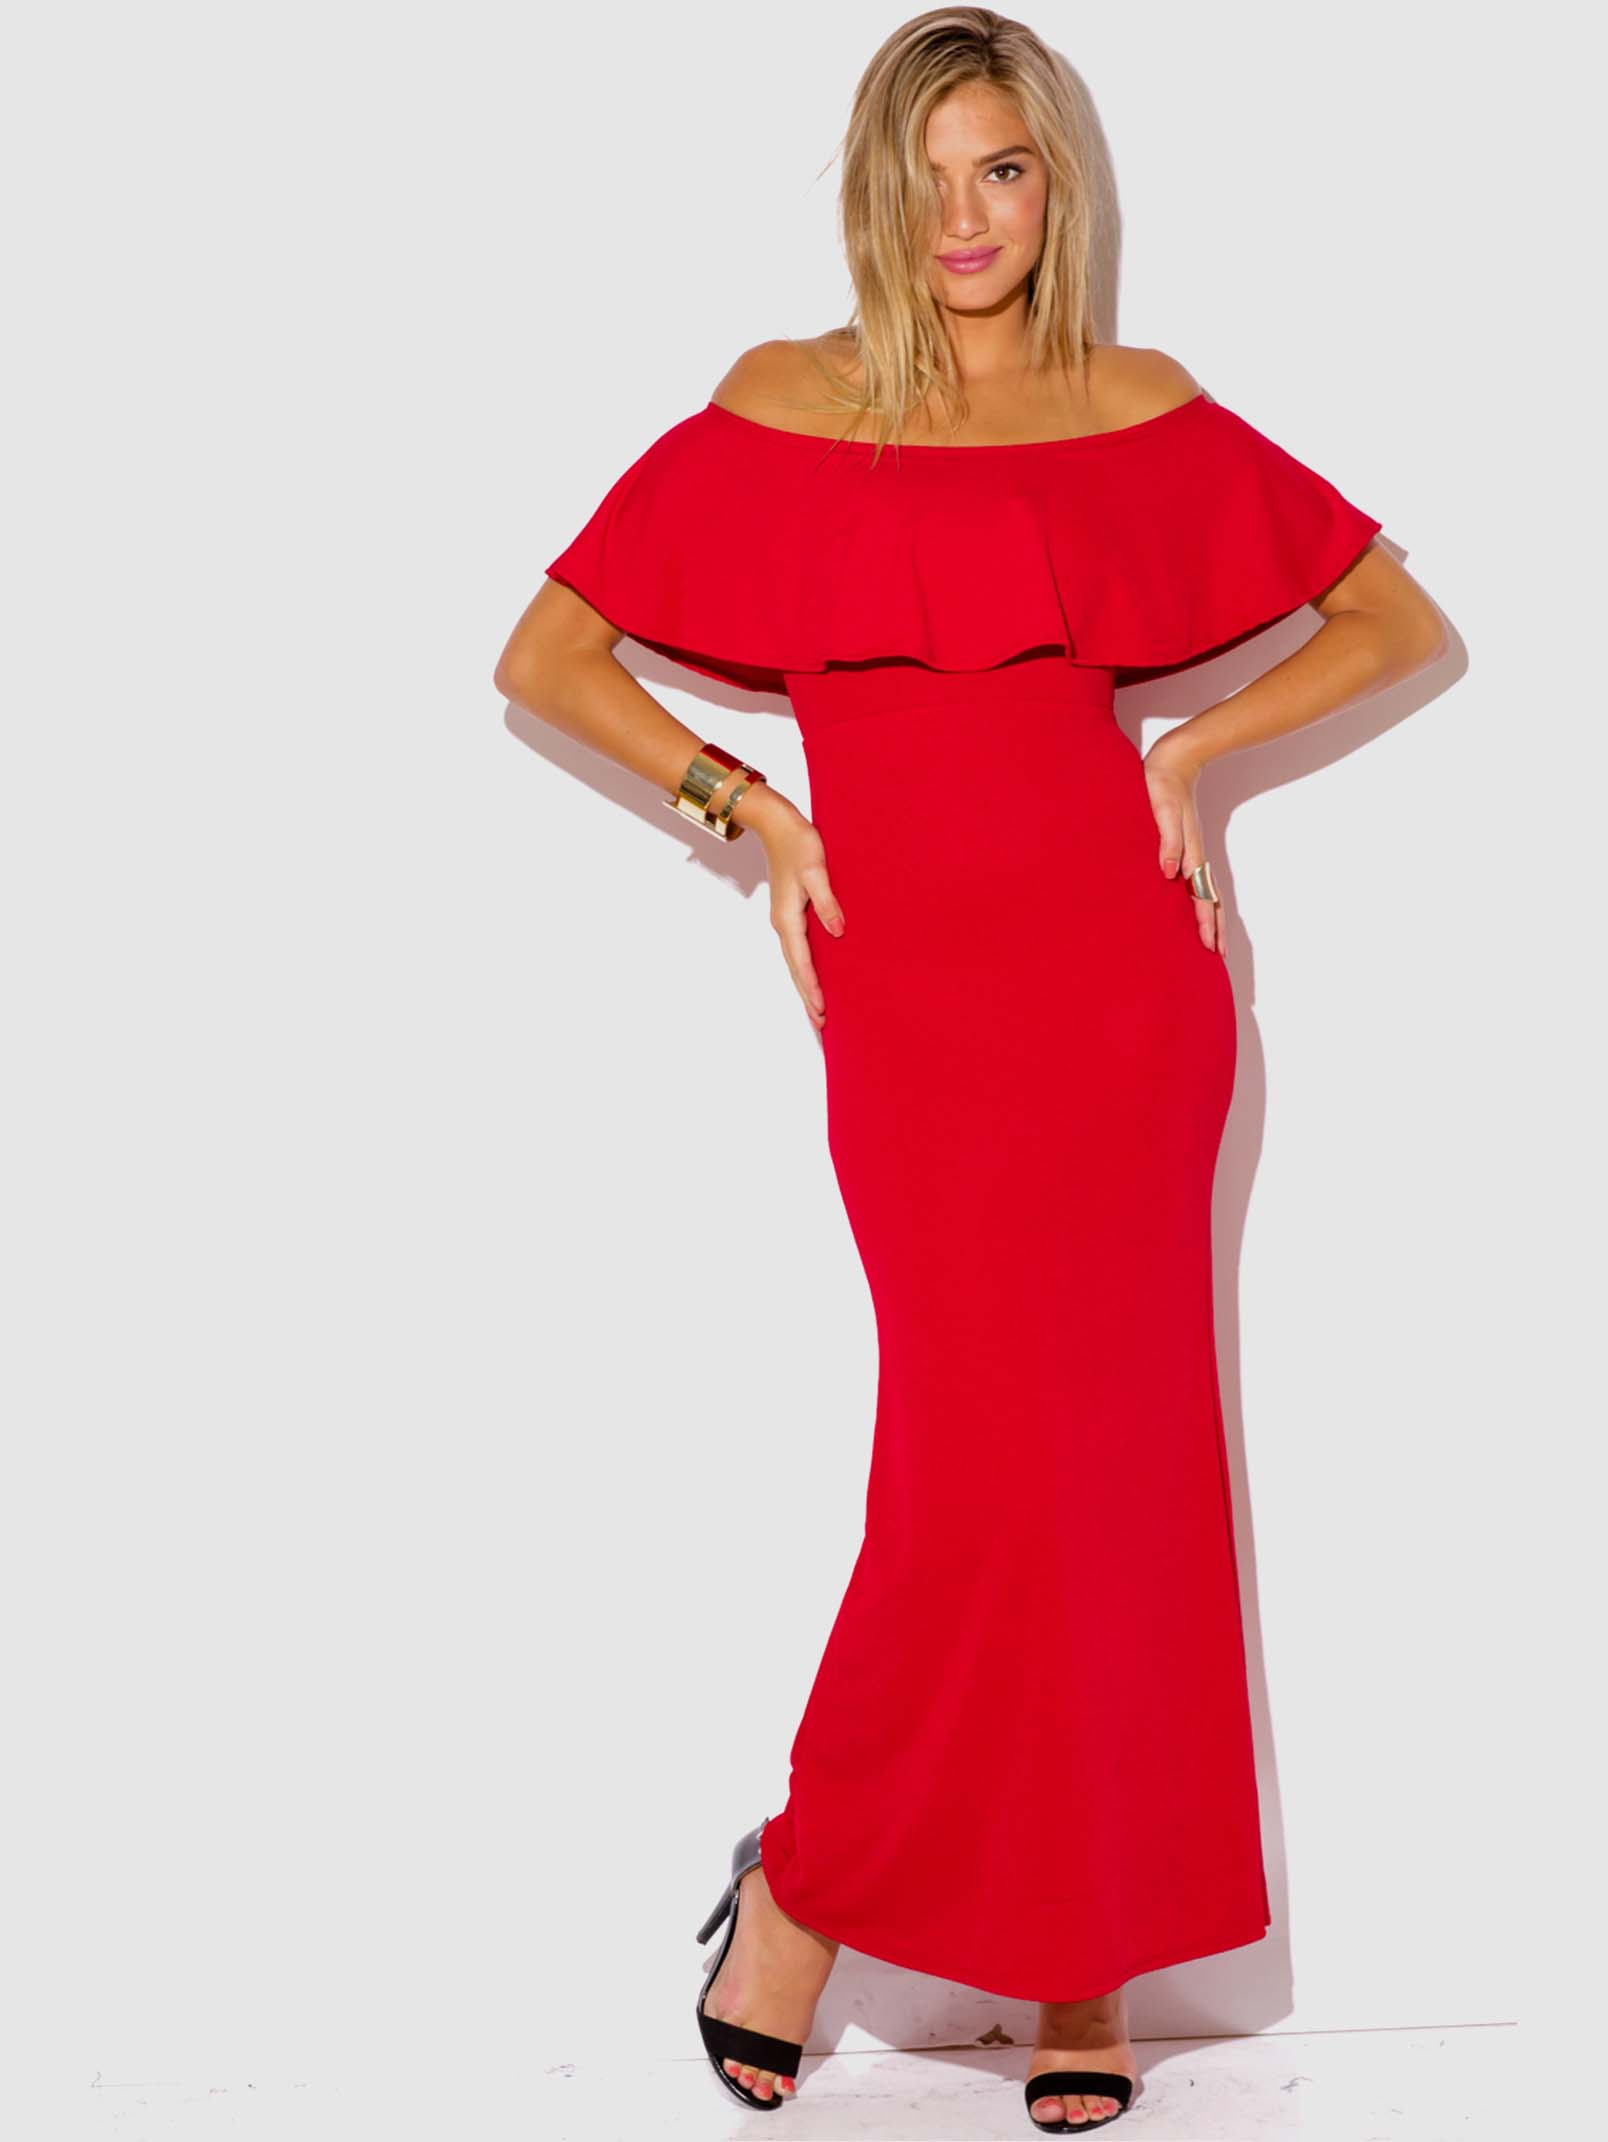 RED RUFFLE MAXI DRESS - ModishOnline.com